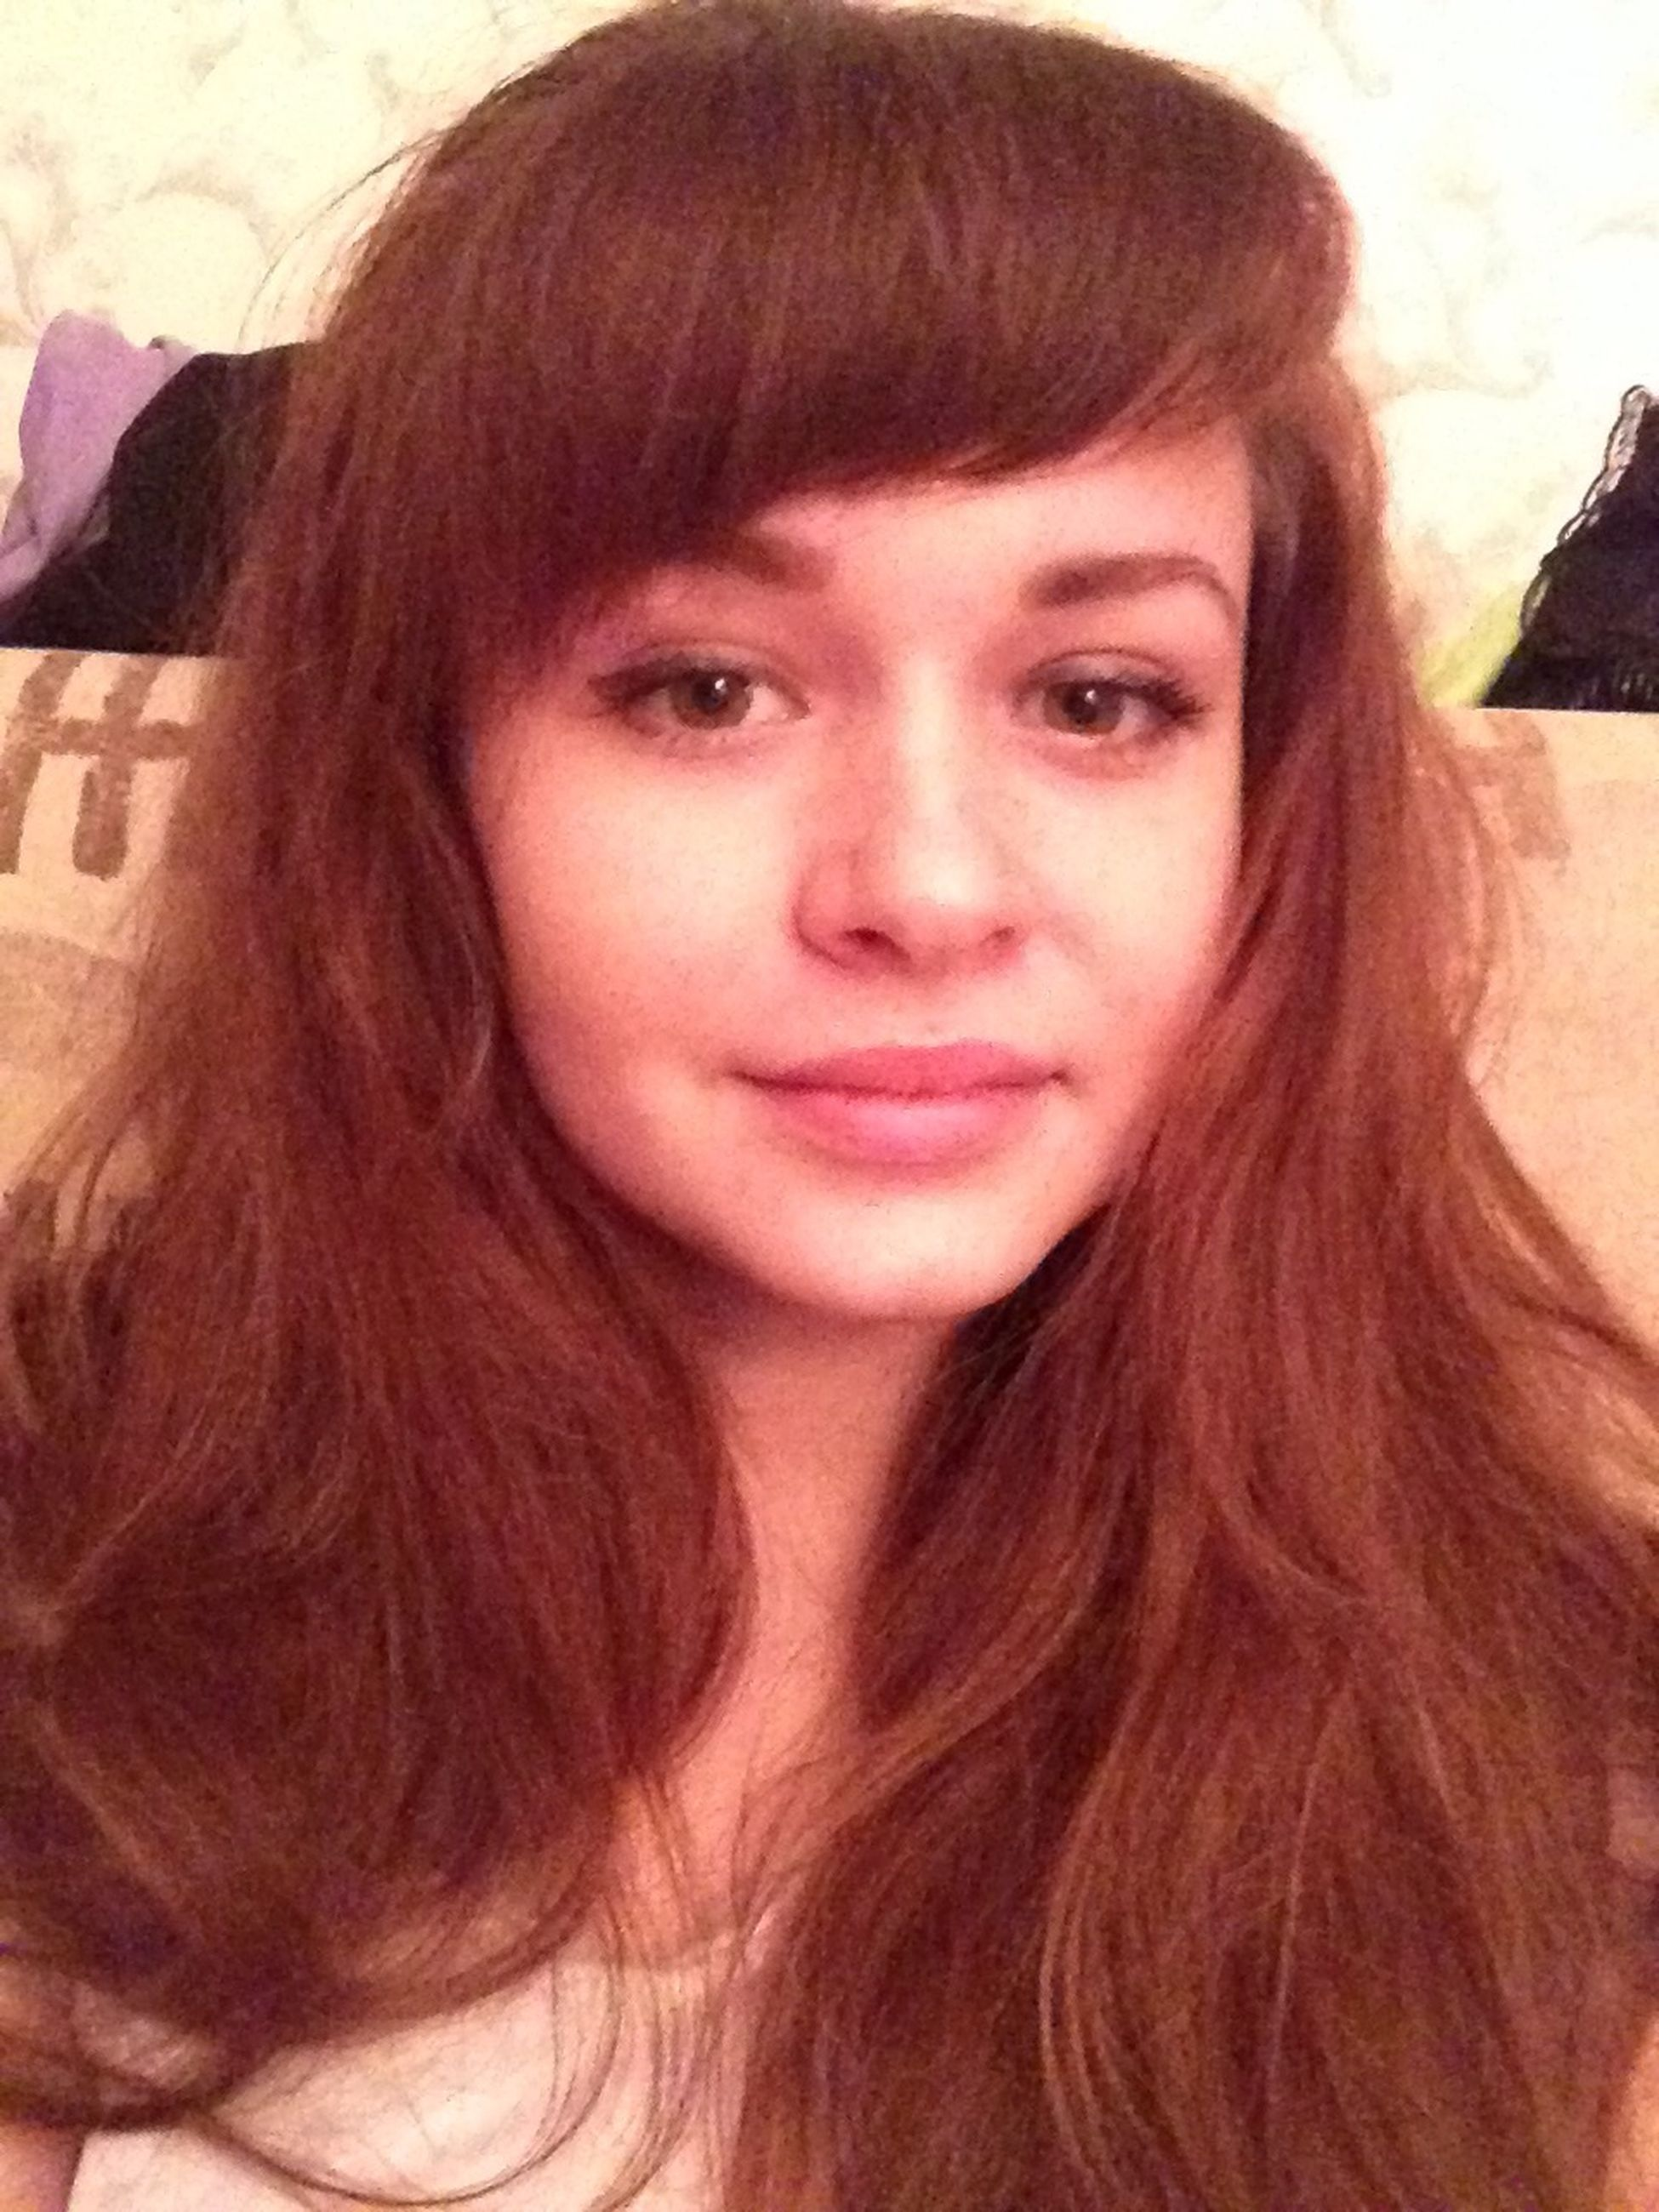 young adult, young women, person, portrait, looking at camera, long hair, headshot, lifestyles, front view, indoors, smiling, leisure activity, brown hair, black hair, close-up, human face, head and shoulders